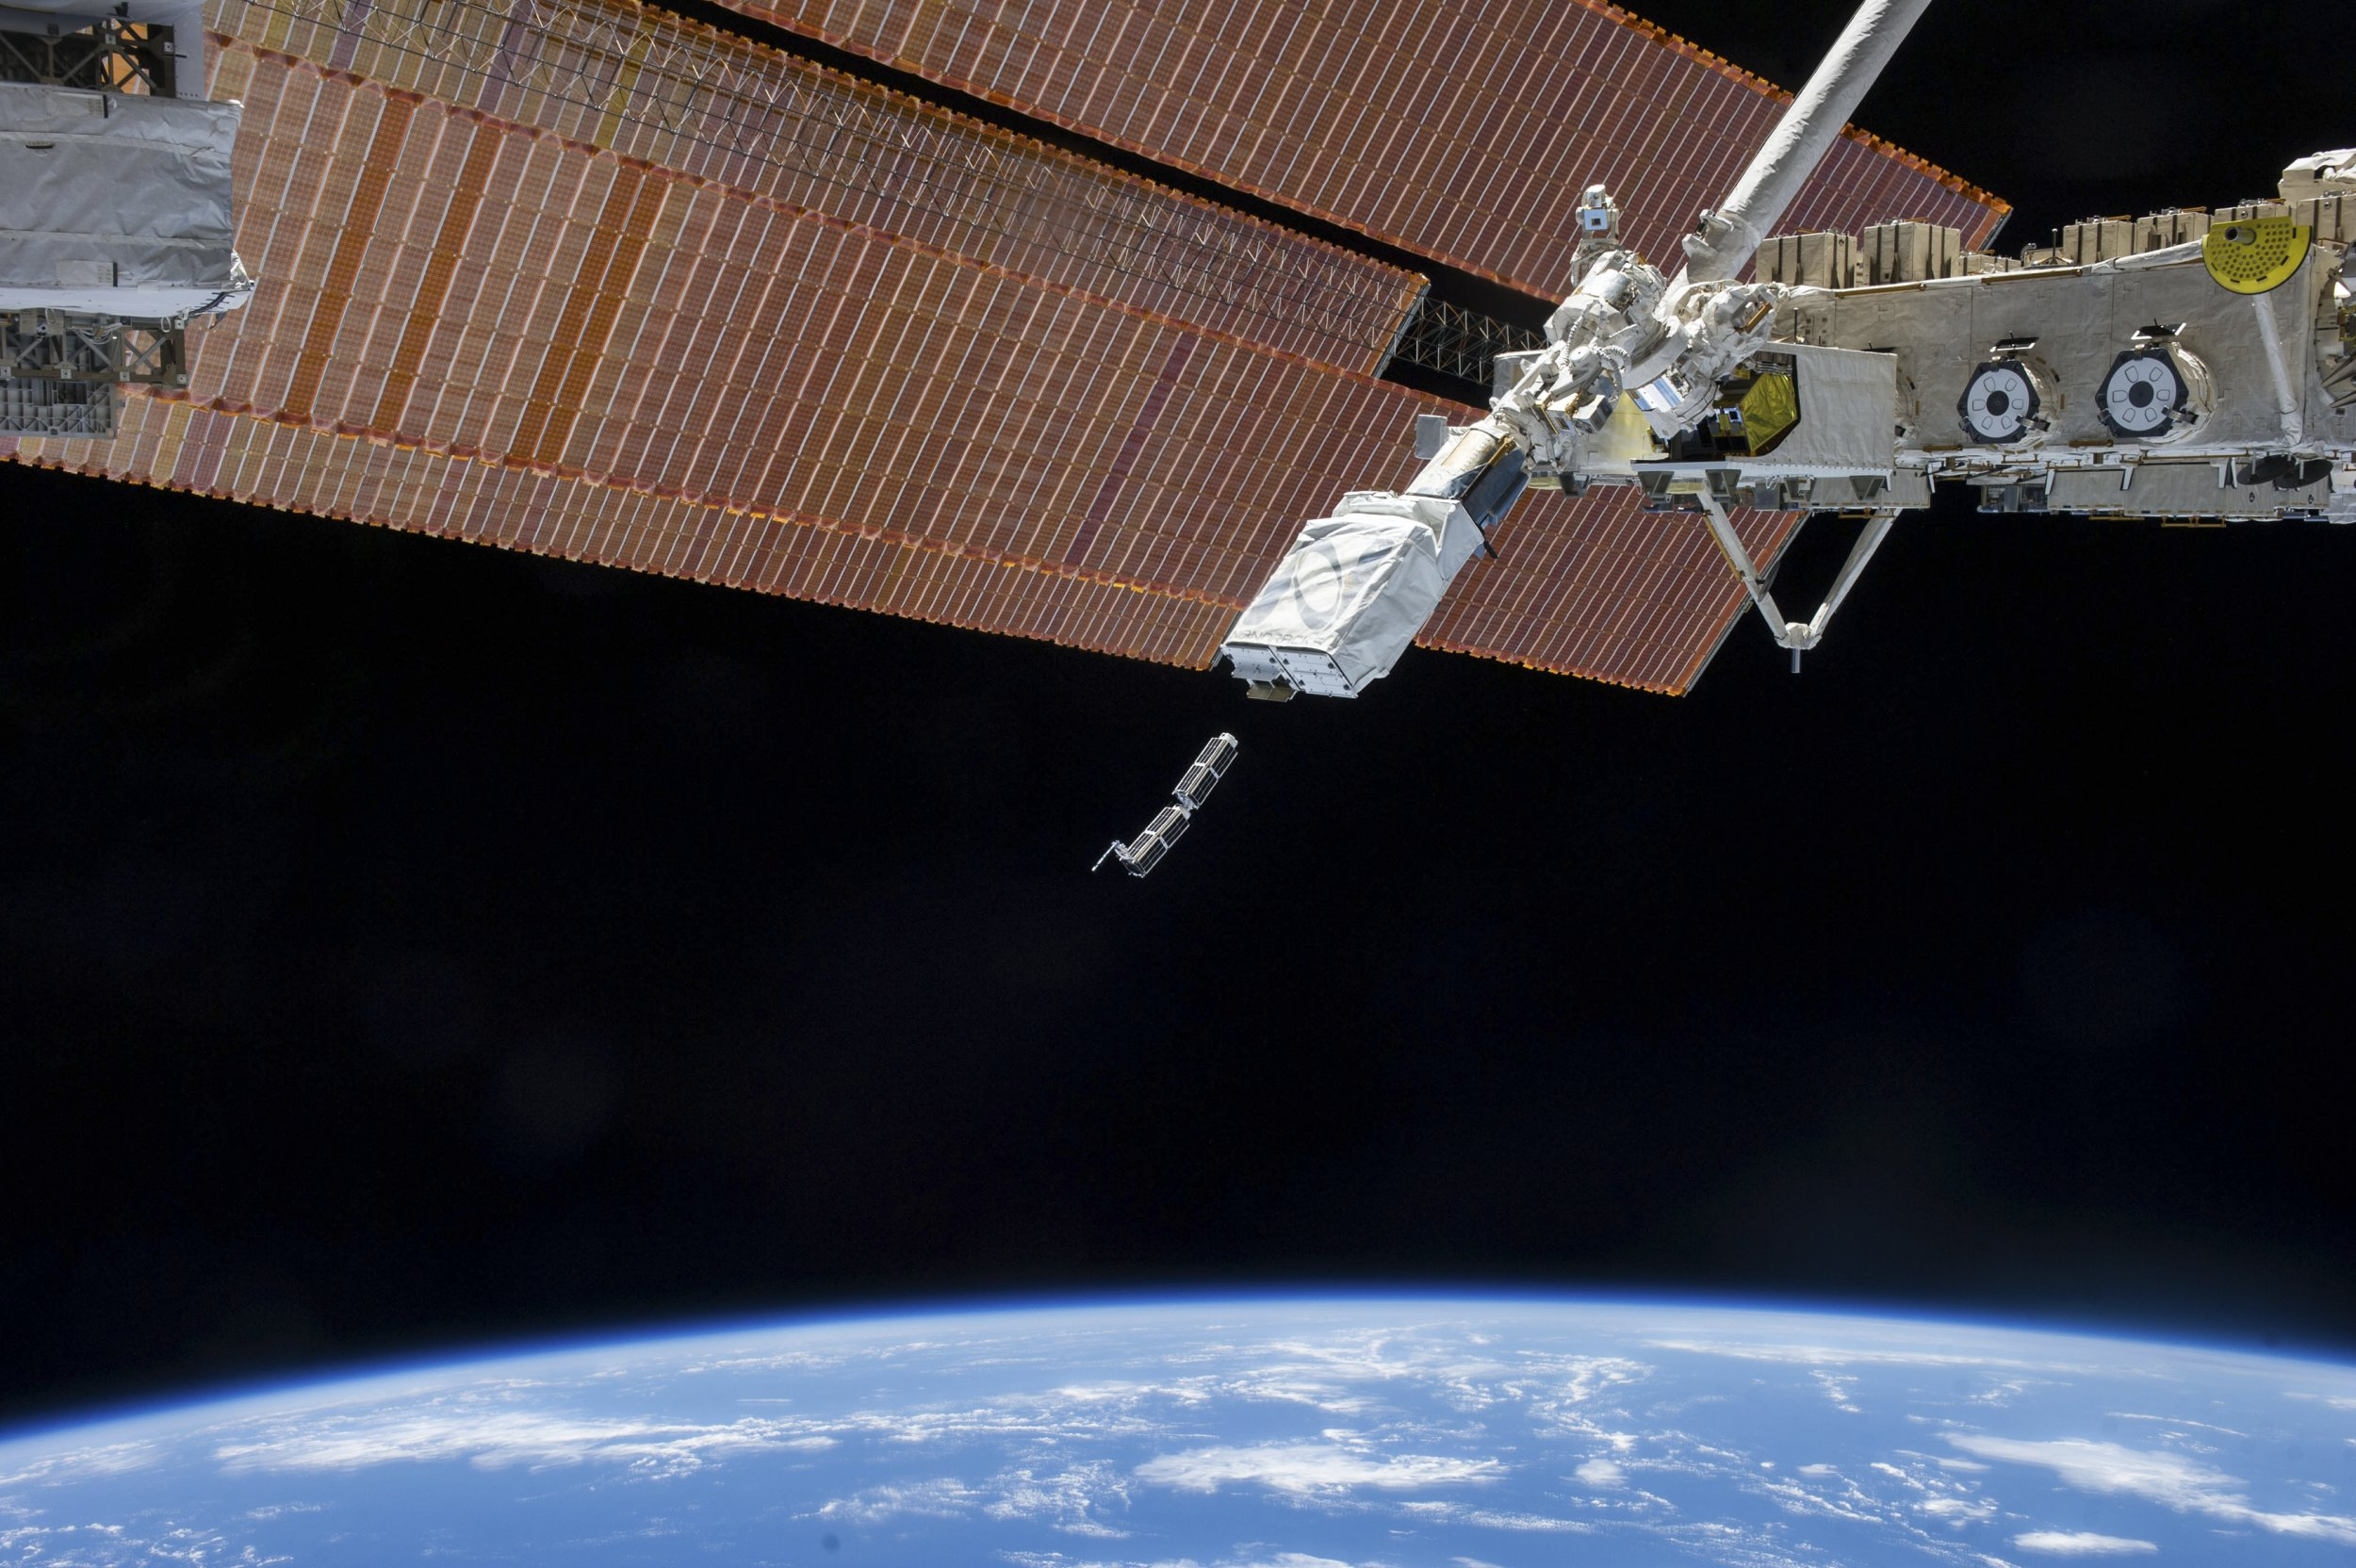 Small Satellite Orbital Deployer in space with CubeSats